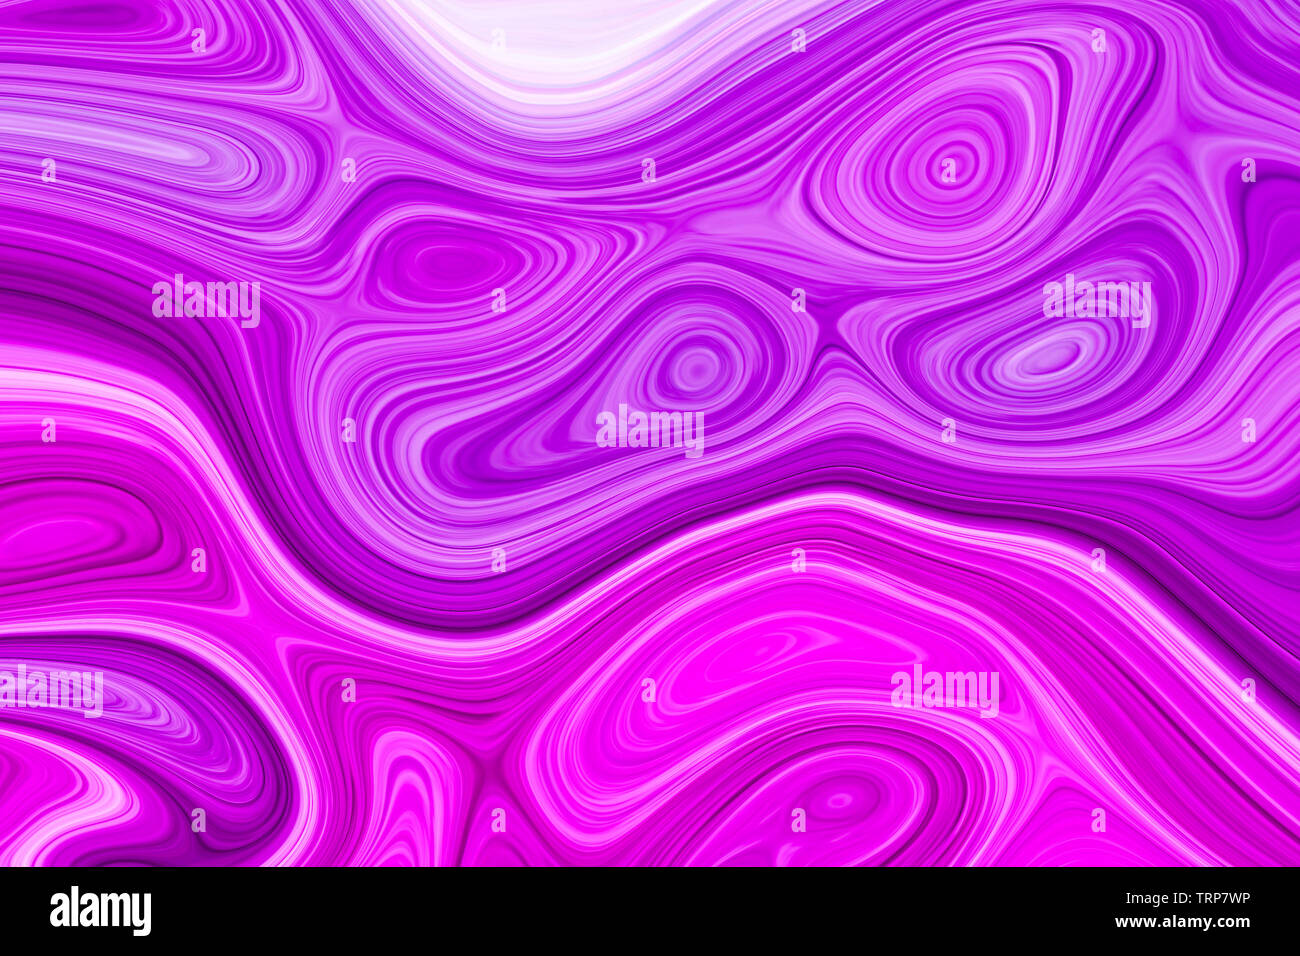 A New Flowing Texture For Booklets Leaflets Light Background With Neon Pink And Blue Shapes Brand New Colored Illustration In Marble Style With G Stock Photo Alamy